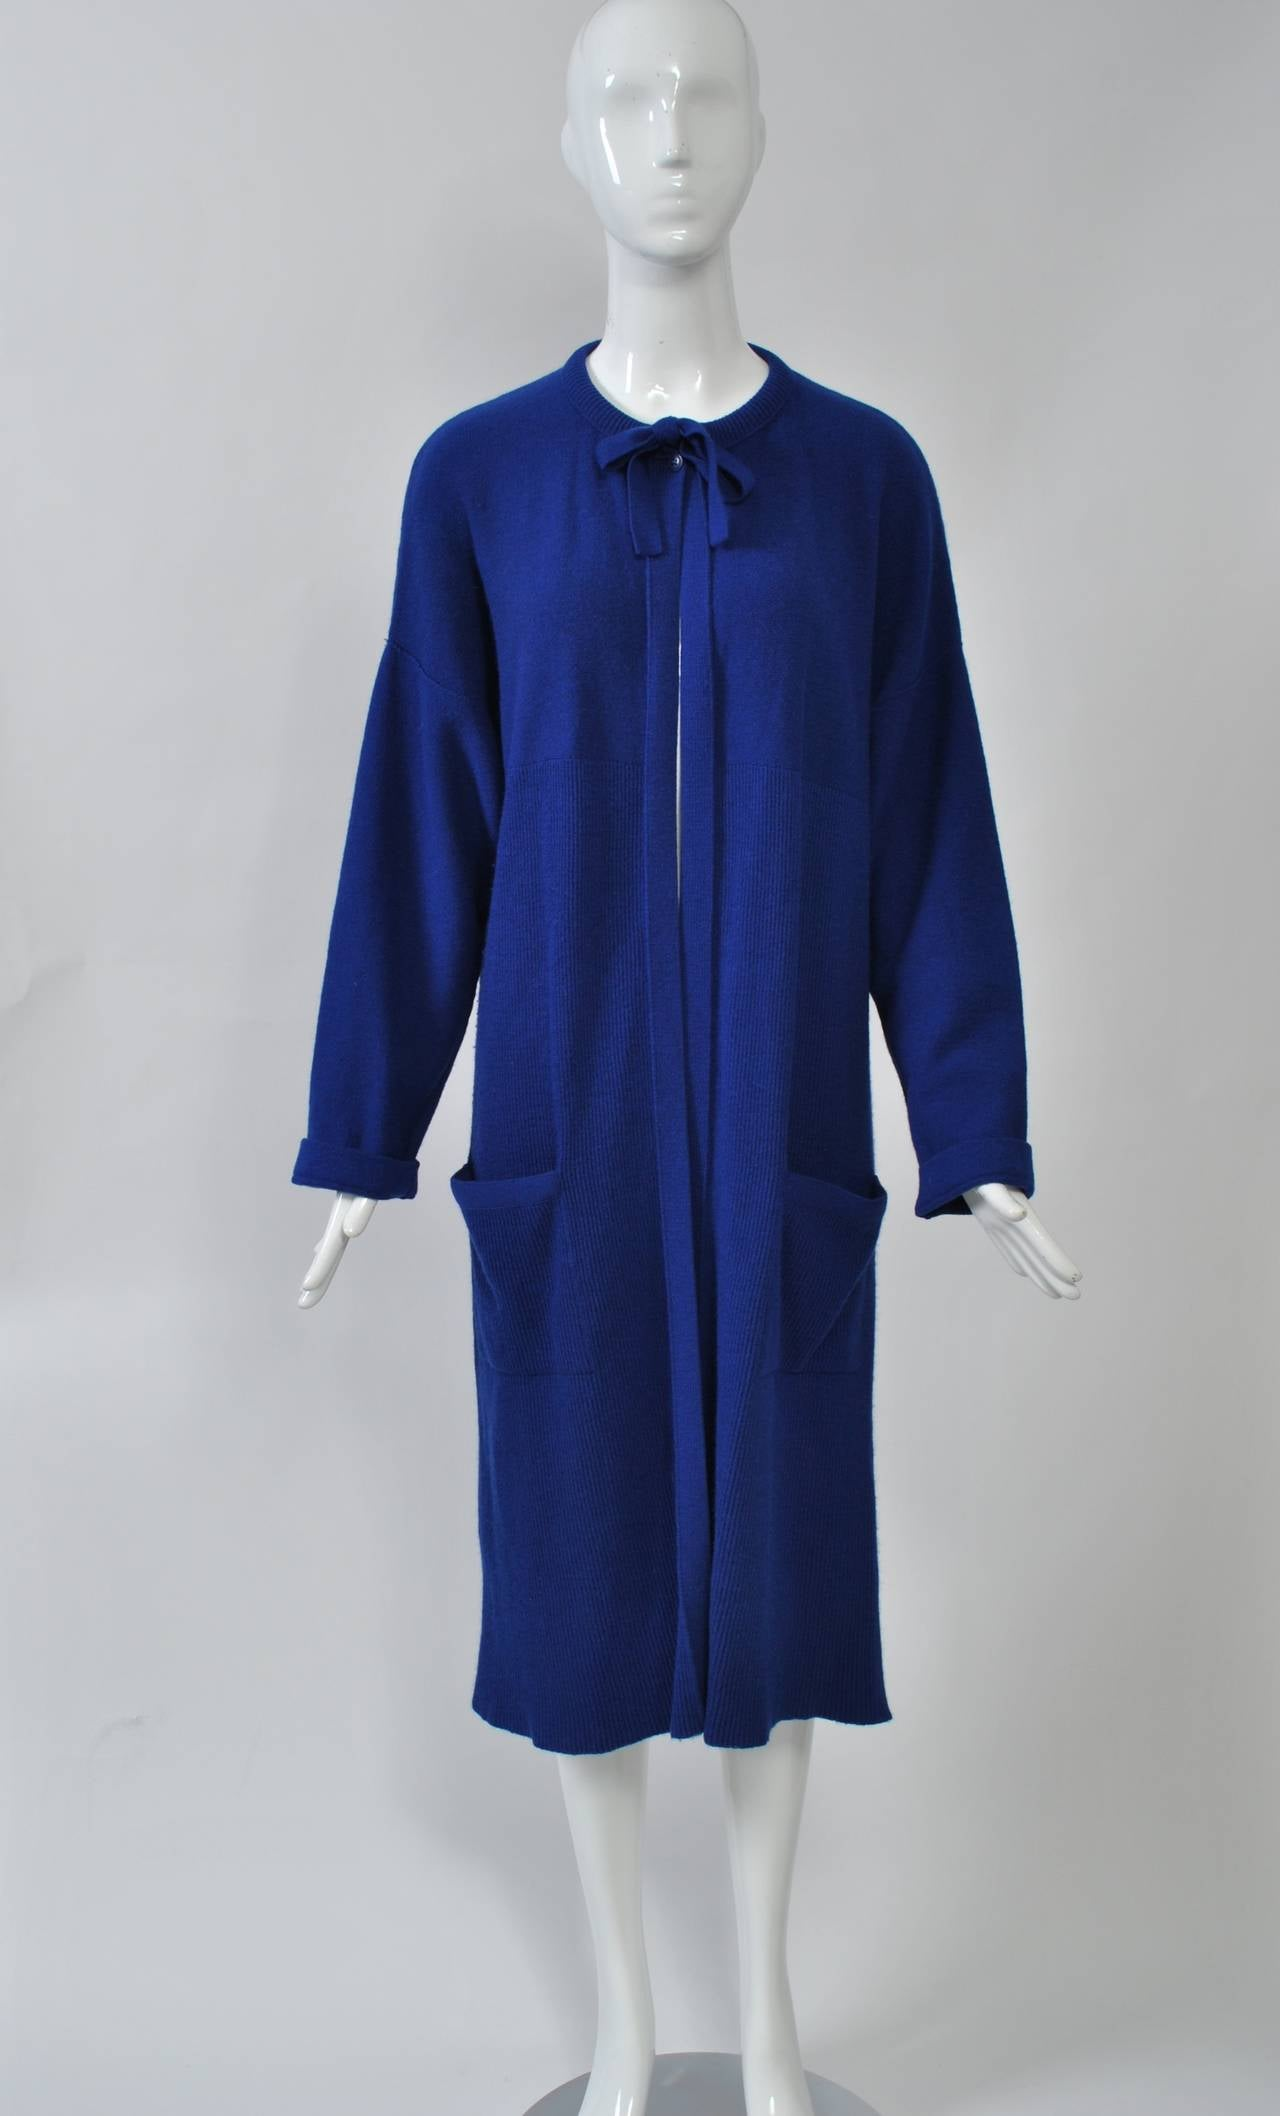 Typical Rykiel styling in this sweater coat of royal blue knit wool with tie neckline, dropped shoulders, and patch pockets. Bodice is plain knit, below is narrow ribbing.